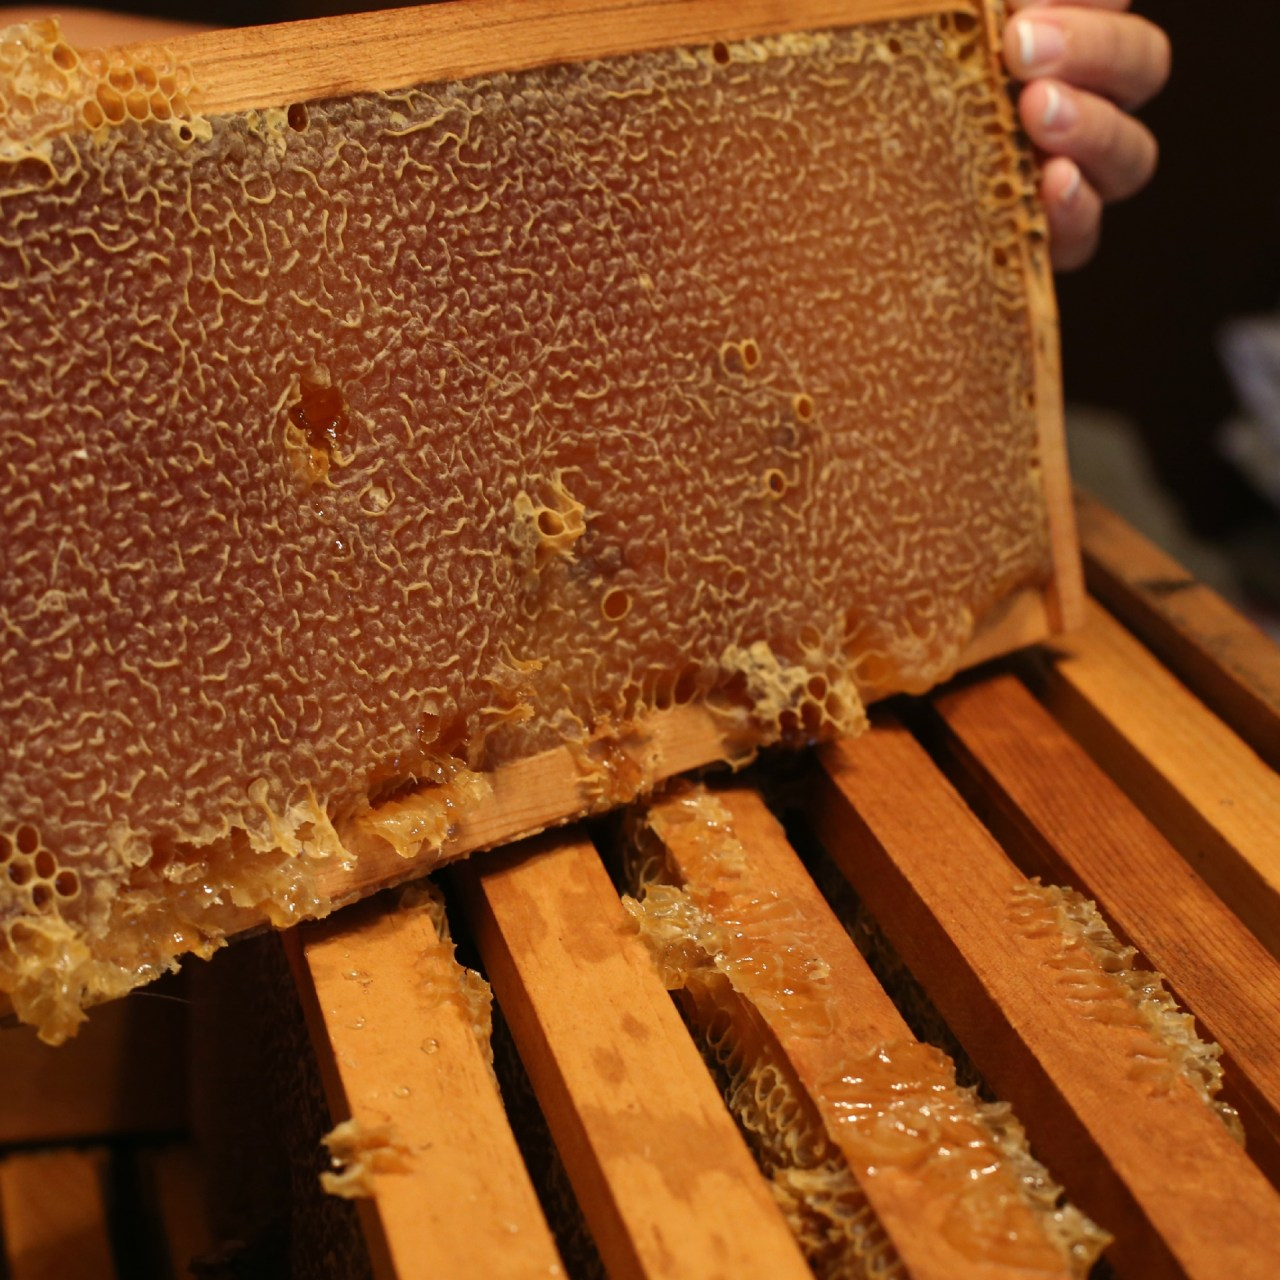 From Hive to Honey – Honey Harvesting by Hand